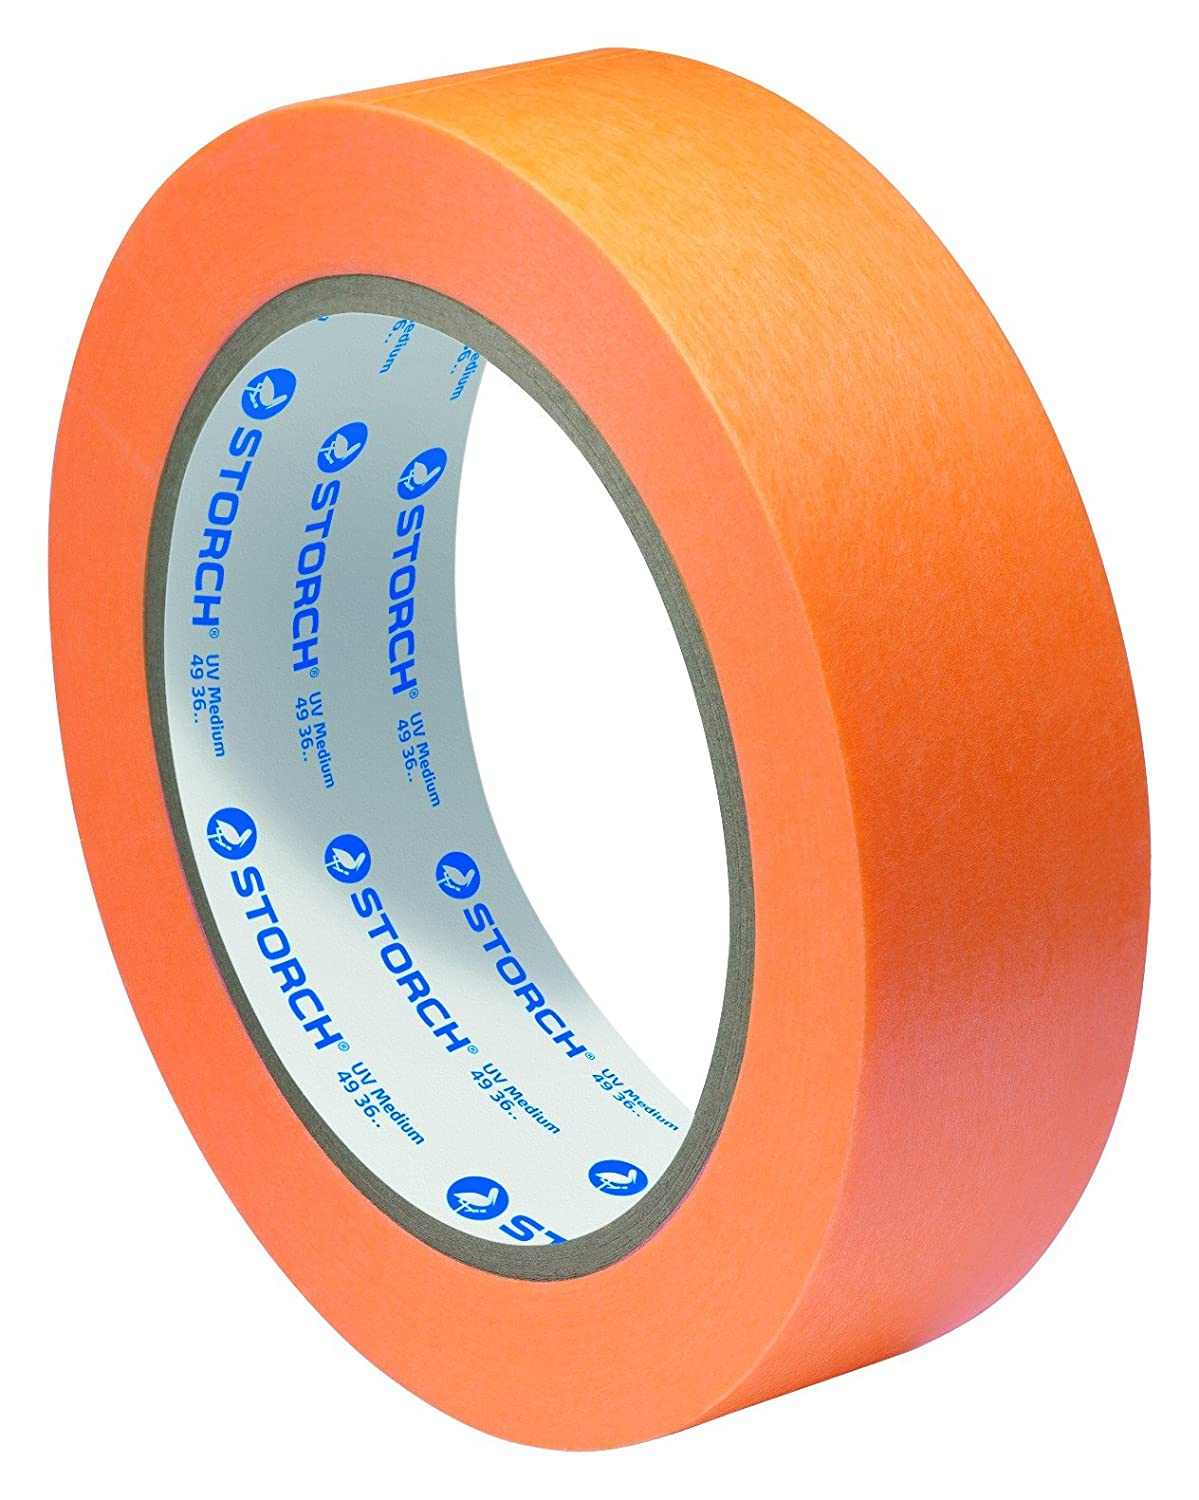 STORCH SUNNYpaper Spezialpapierband Das Goldene UV Medium Standard 30mm x 50m